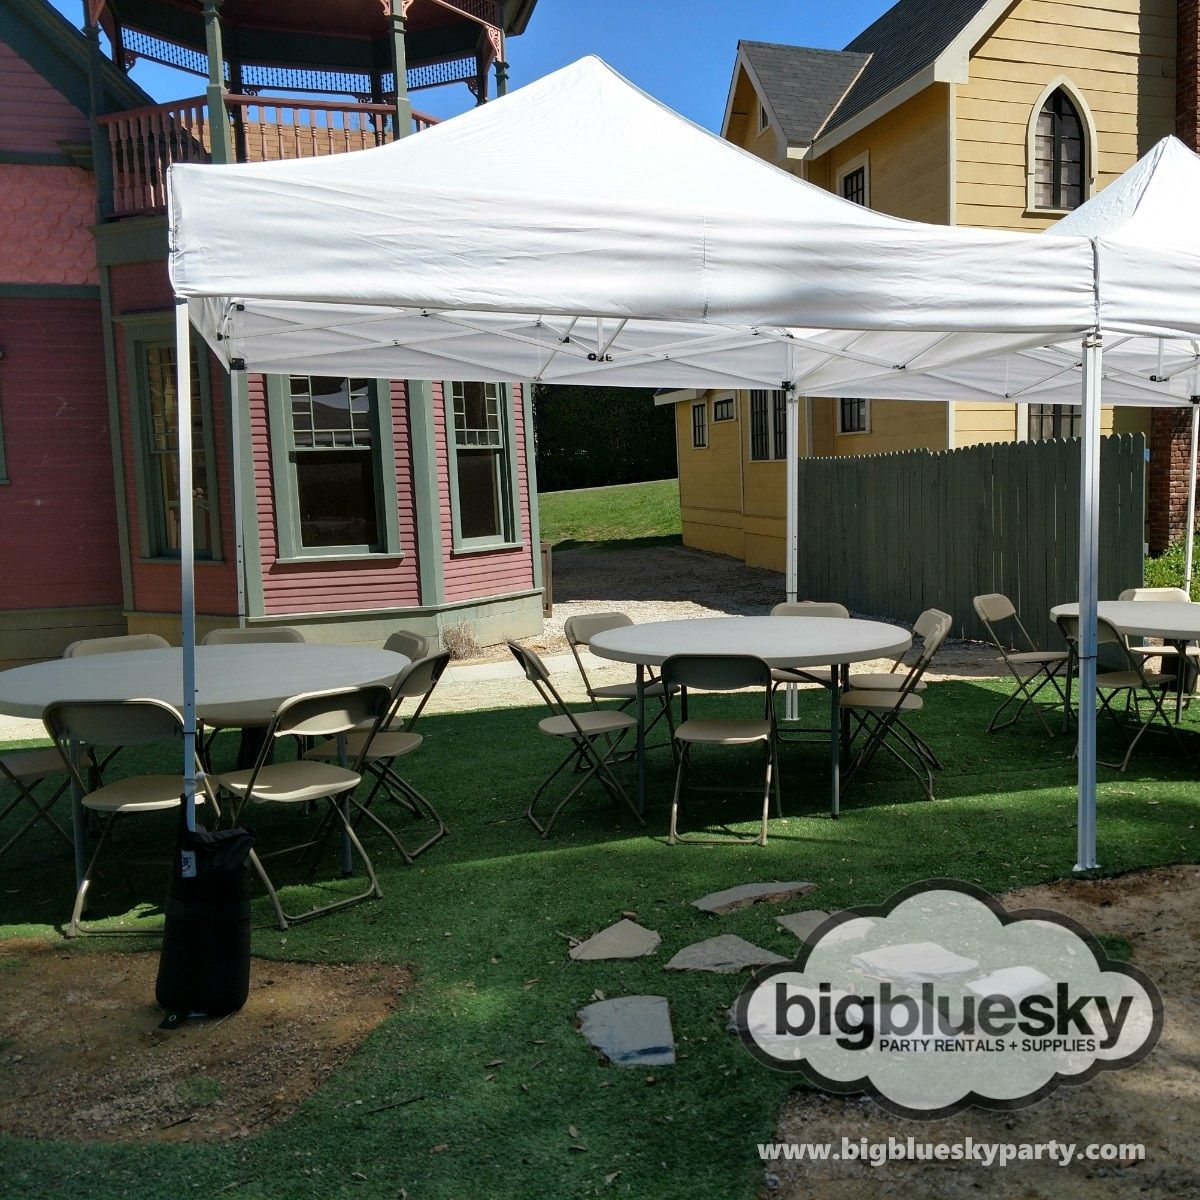 10 x 10 Canopy Rentals These 10' x 10' Pop Up Canopy